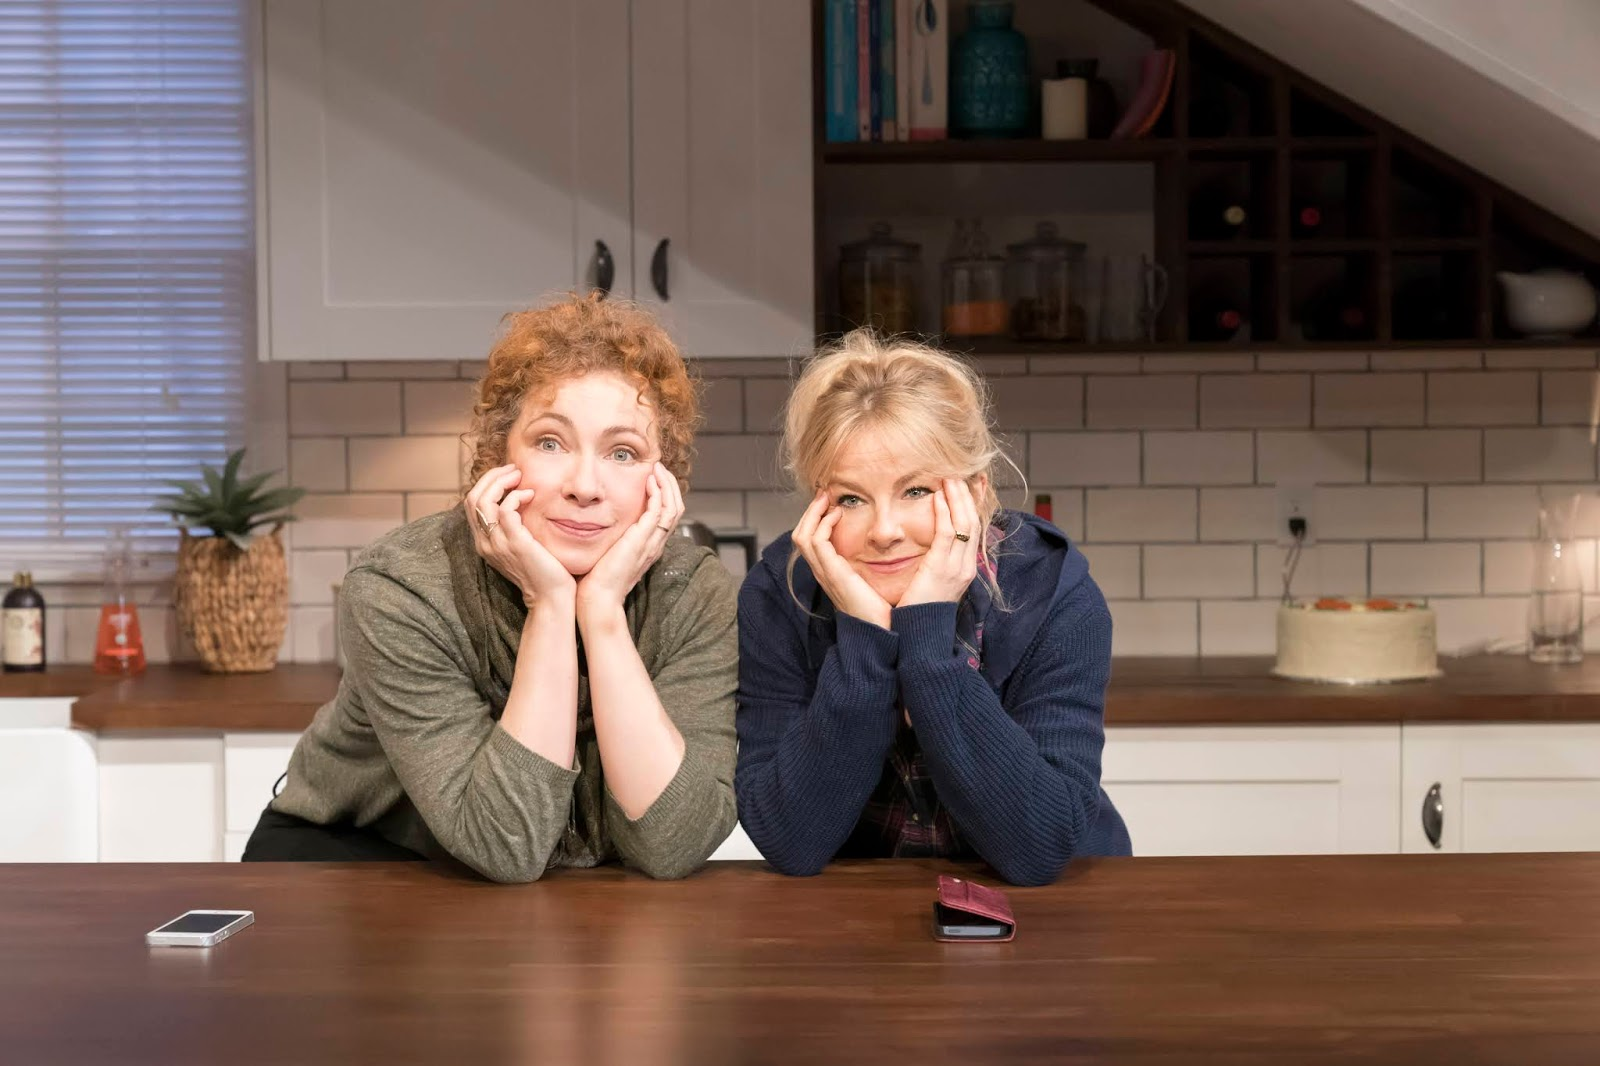 Actors in Admissions, Alex Kingston and Sarah Hadland, stand on-set, which looks like a kitchen